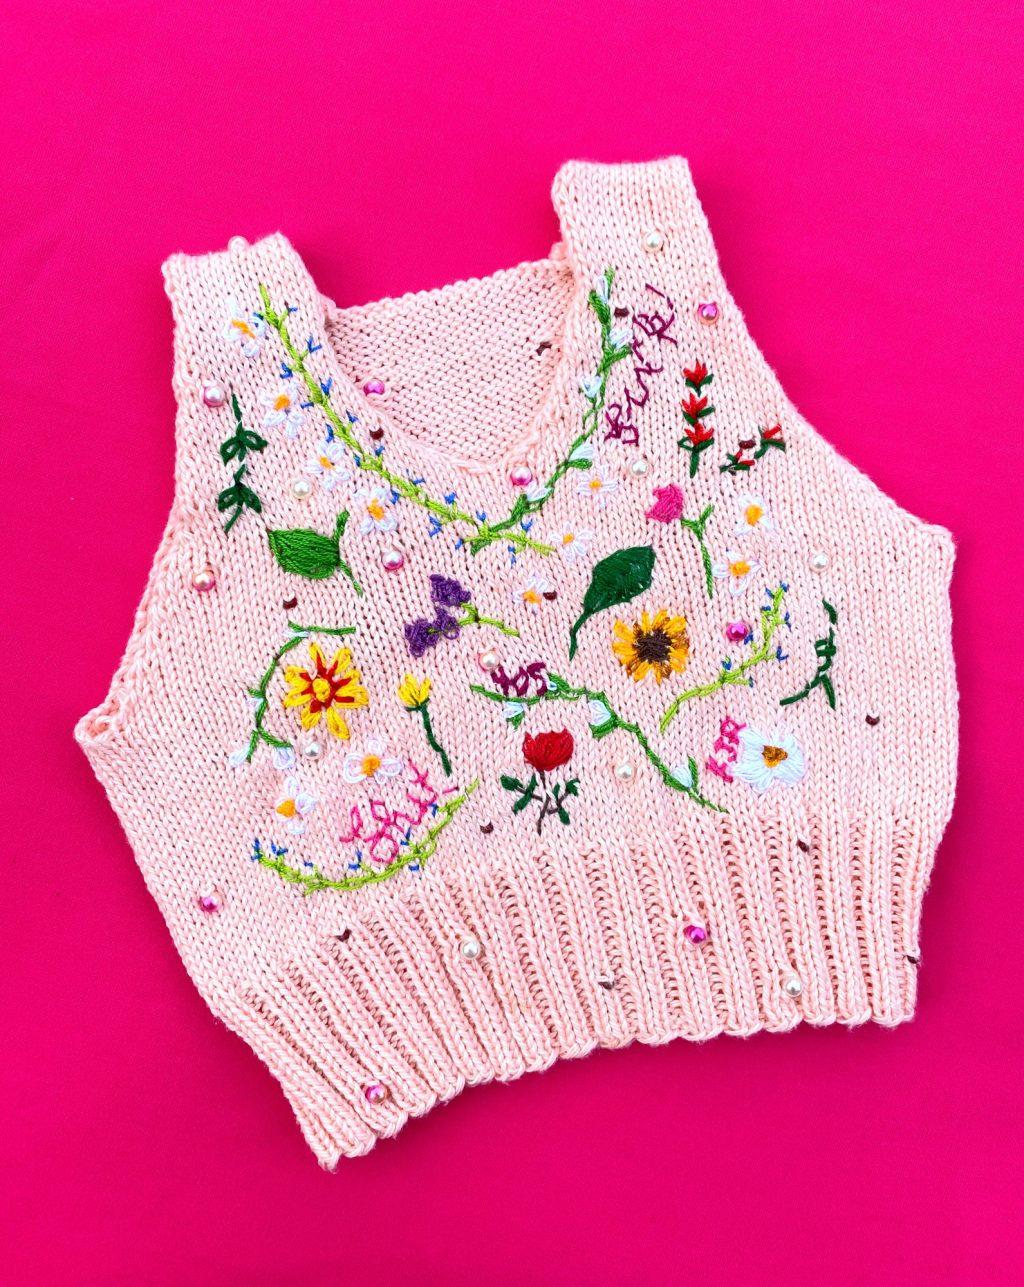 A vest Ross knit in June is photographed on her hot pink kitchen table for an Instagram post that shows off her work. Ross said she has recently started incorporating beadwork into her knitwear, like the floral designs in this piece.